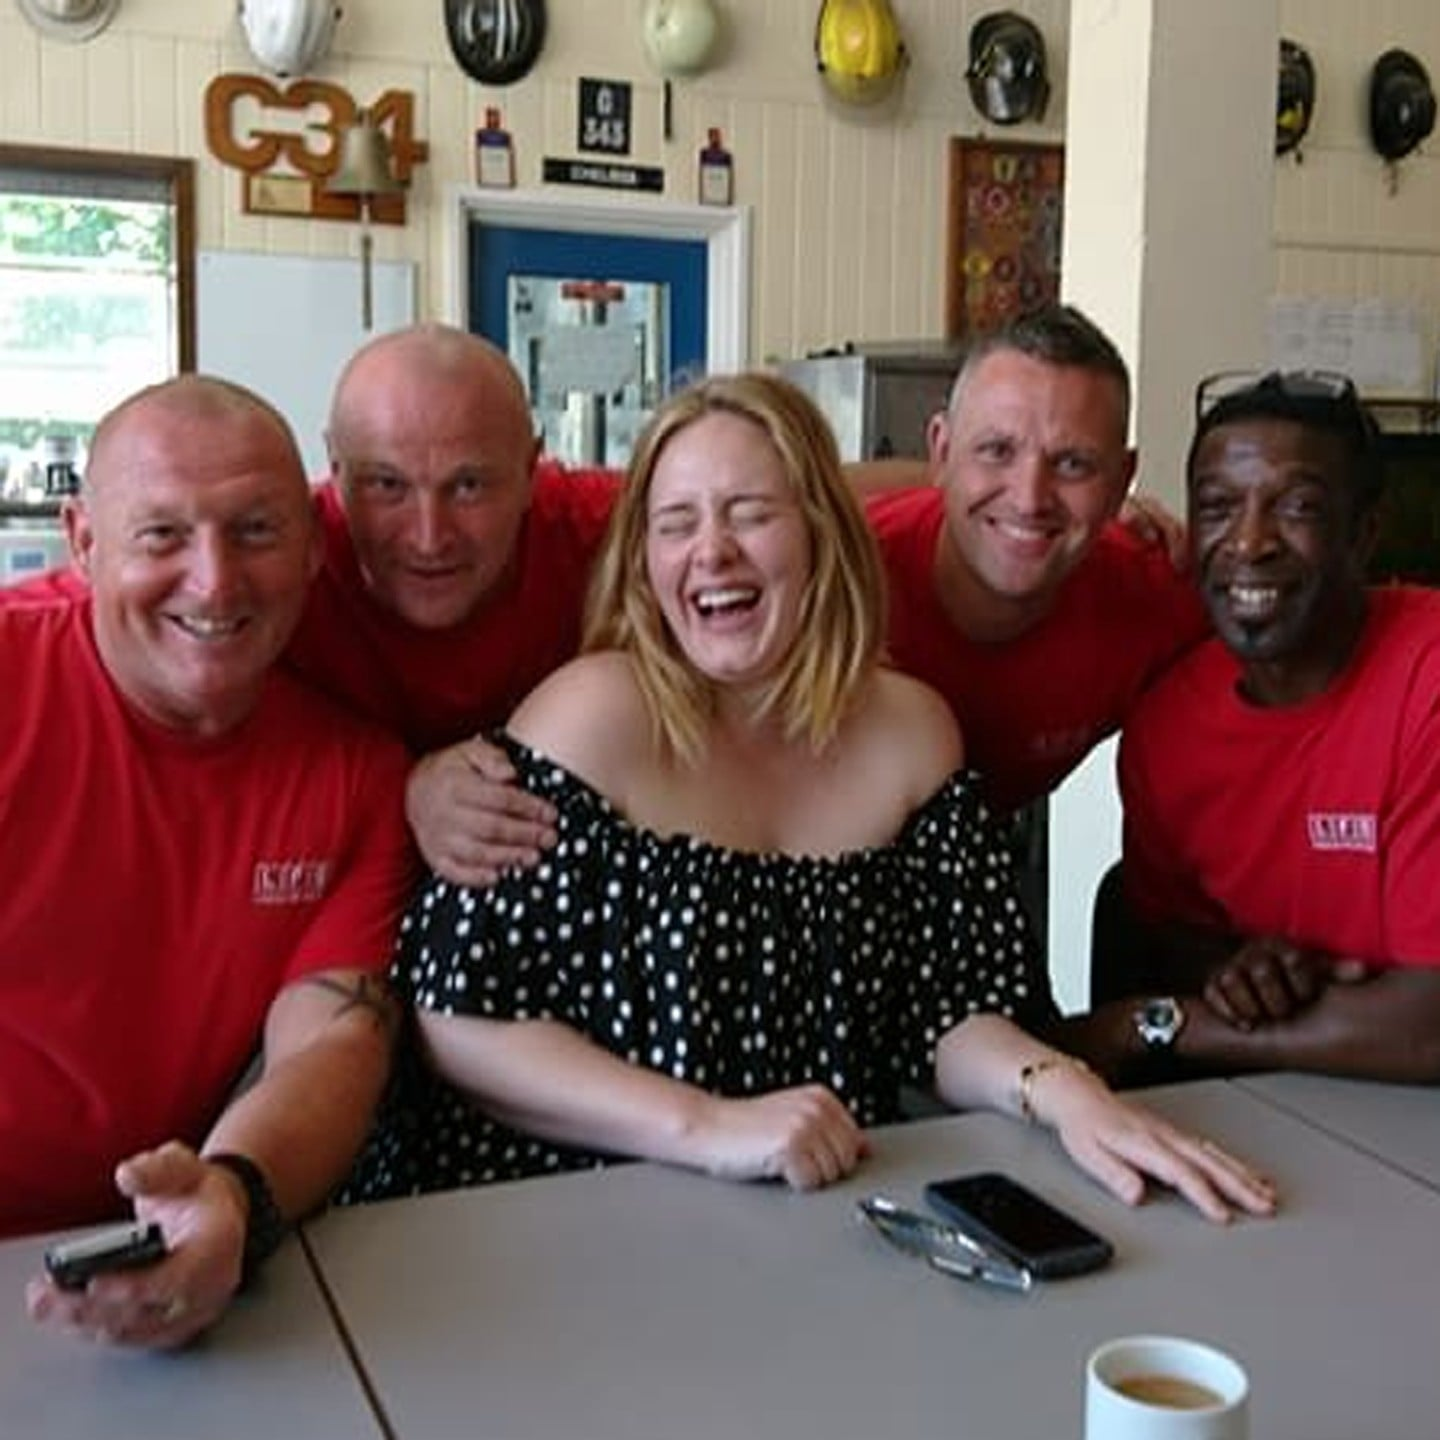 Adele visits Grenfell Tower firefighters for a cup of tea and a cuddle